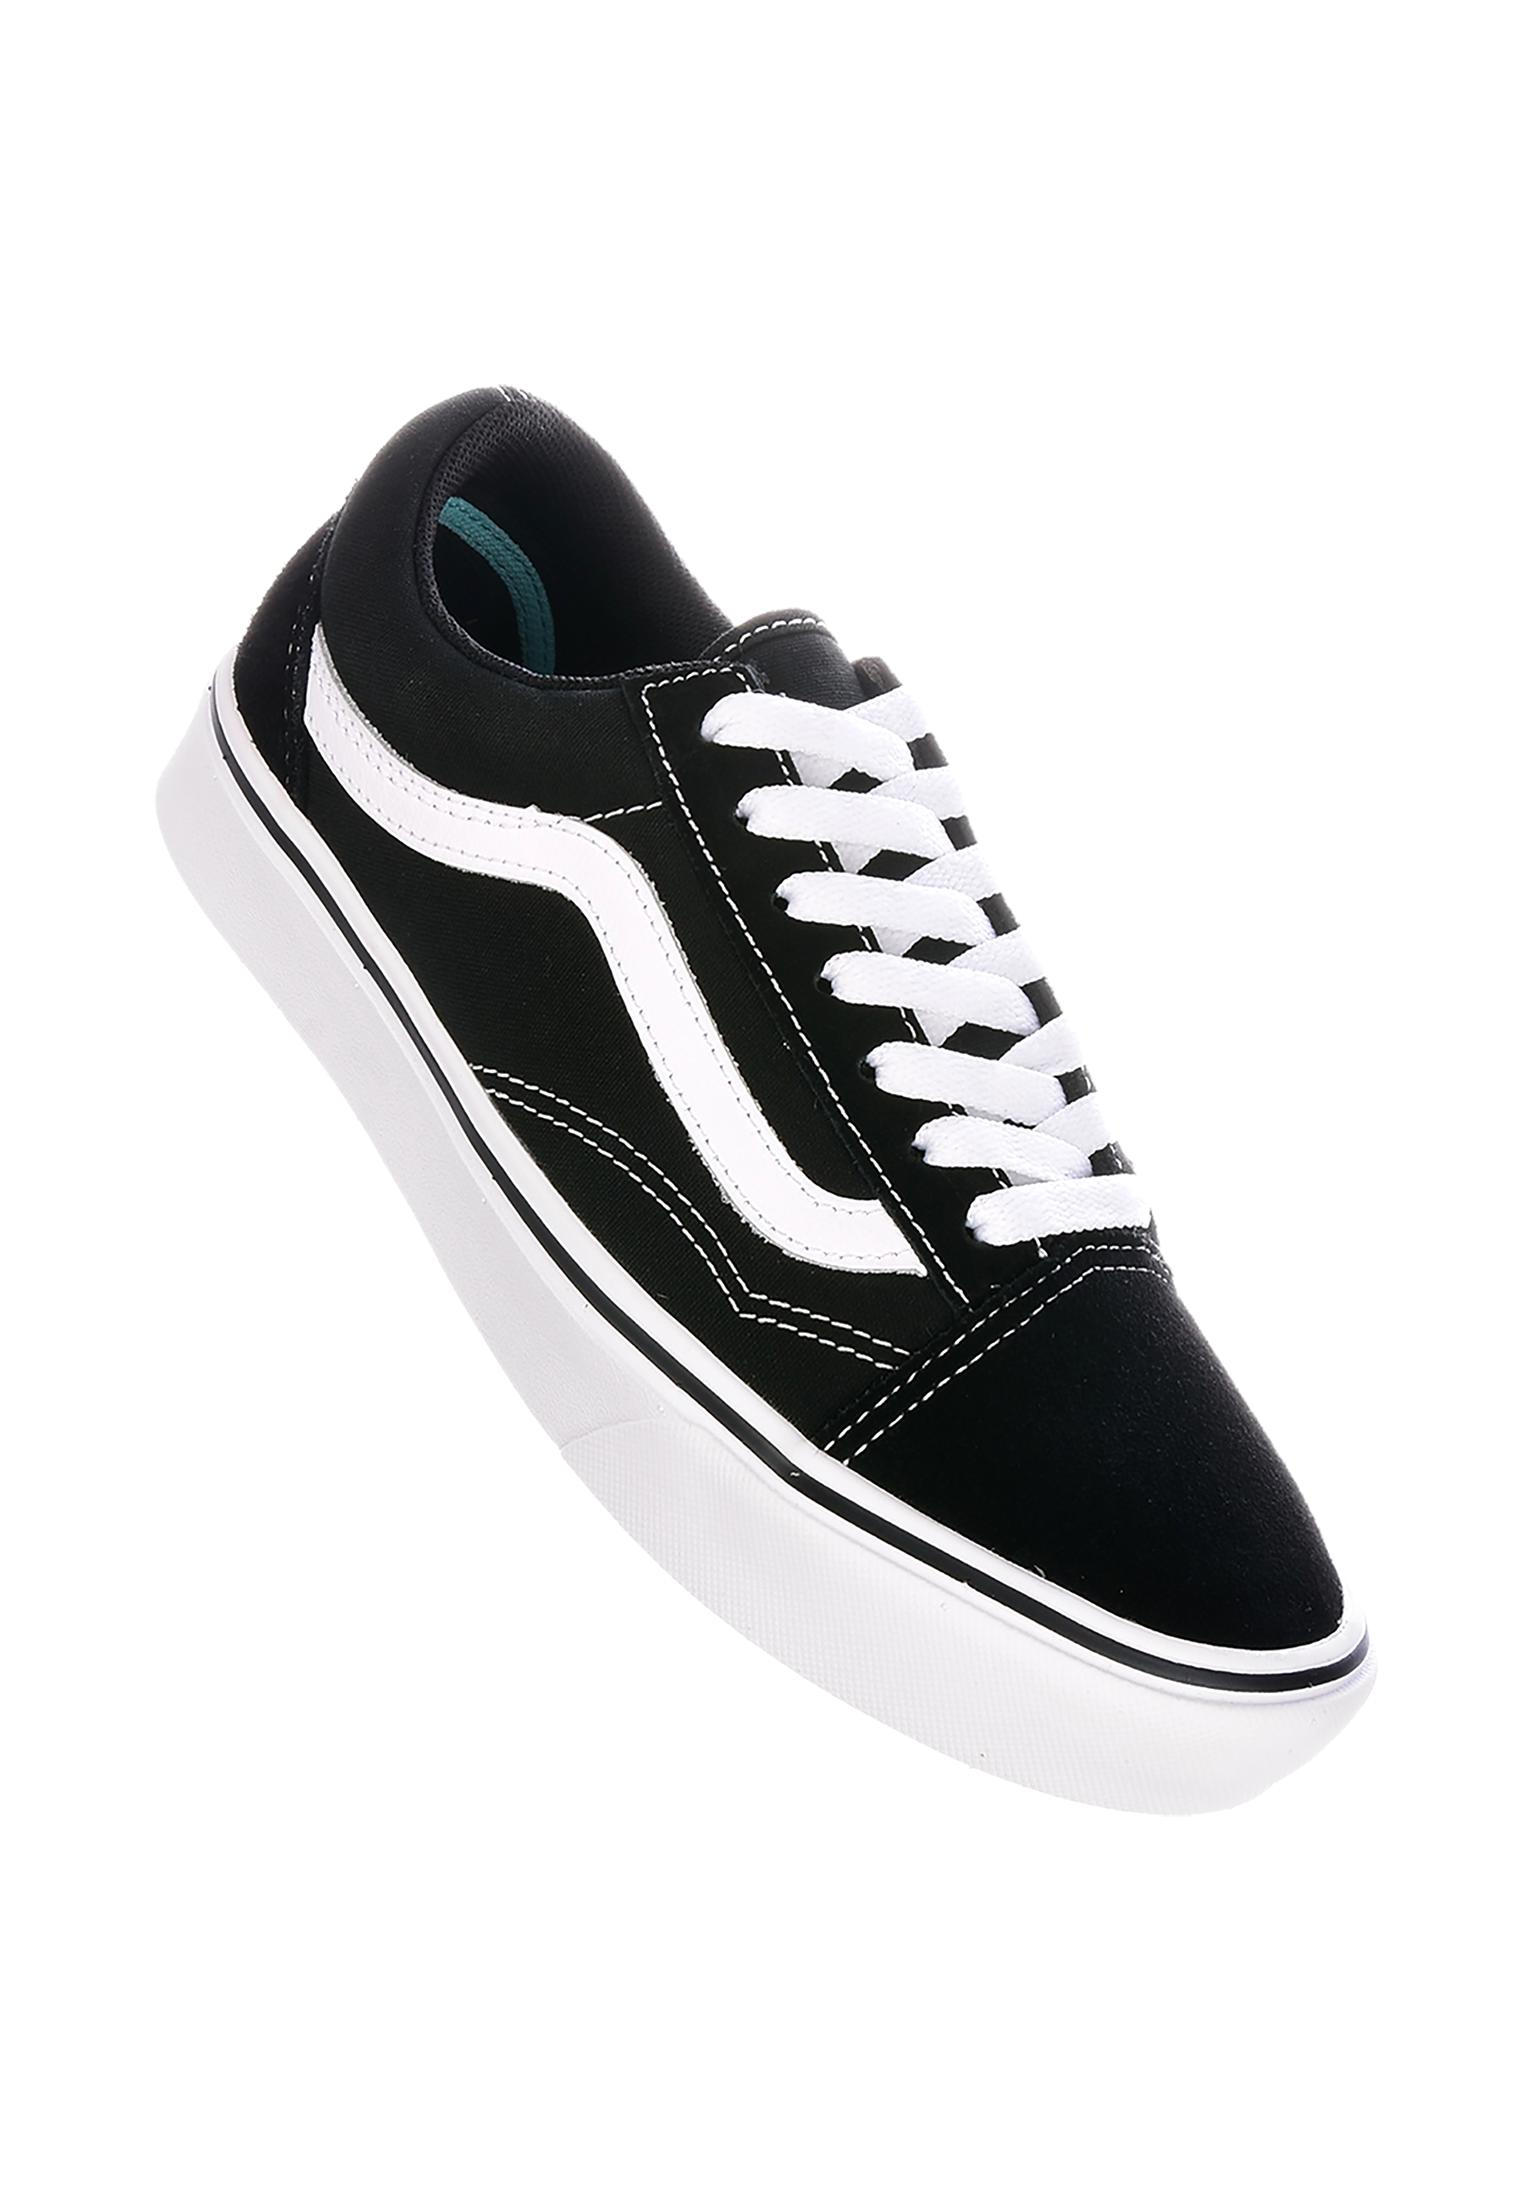 1ebc6569b3bf Old Skool Comfy Cush Vans All Shoes in black-truewhite for Women